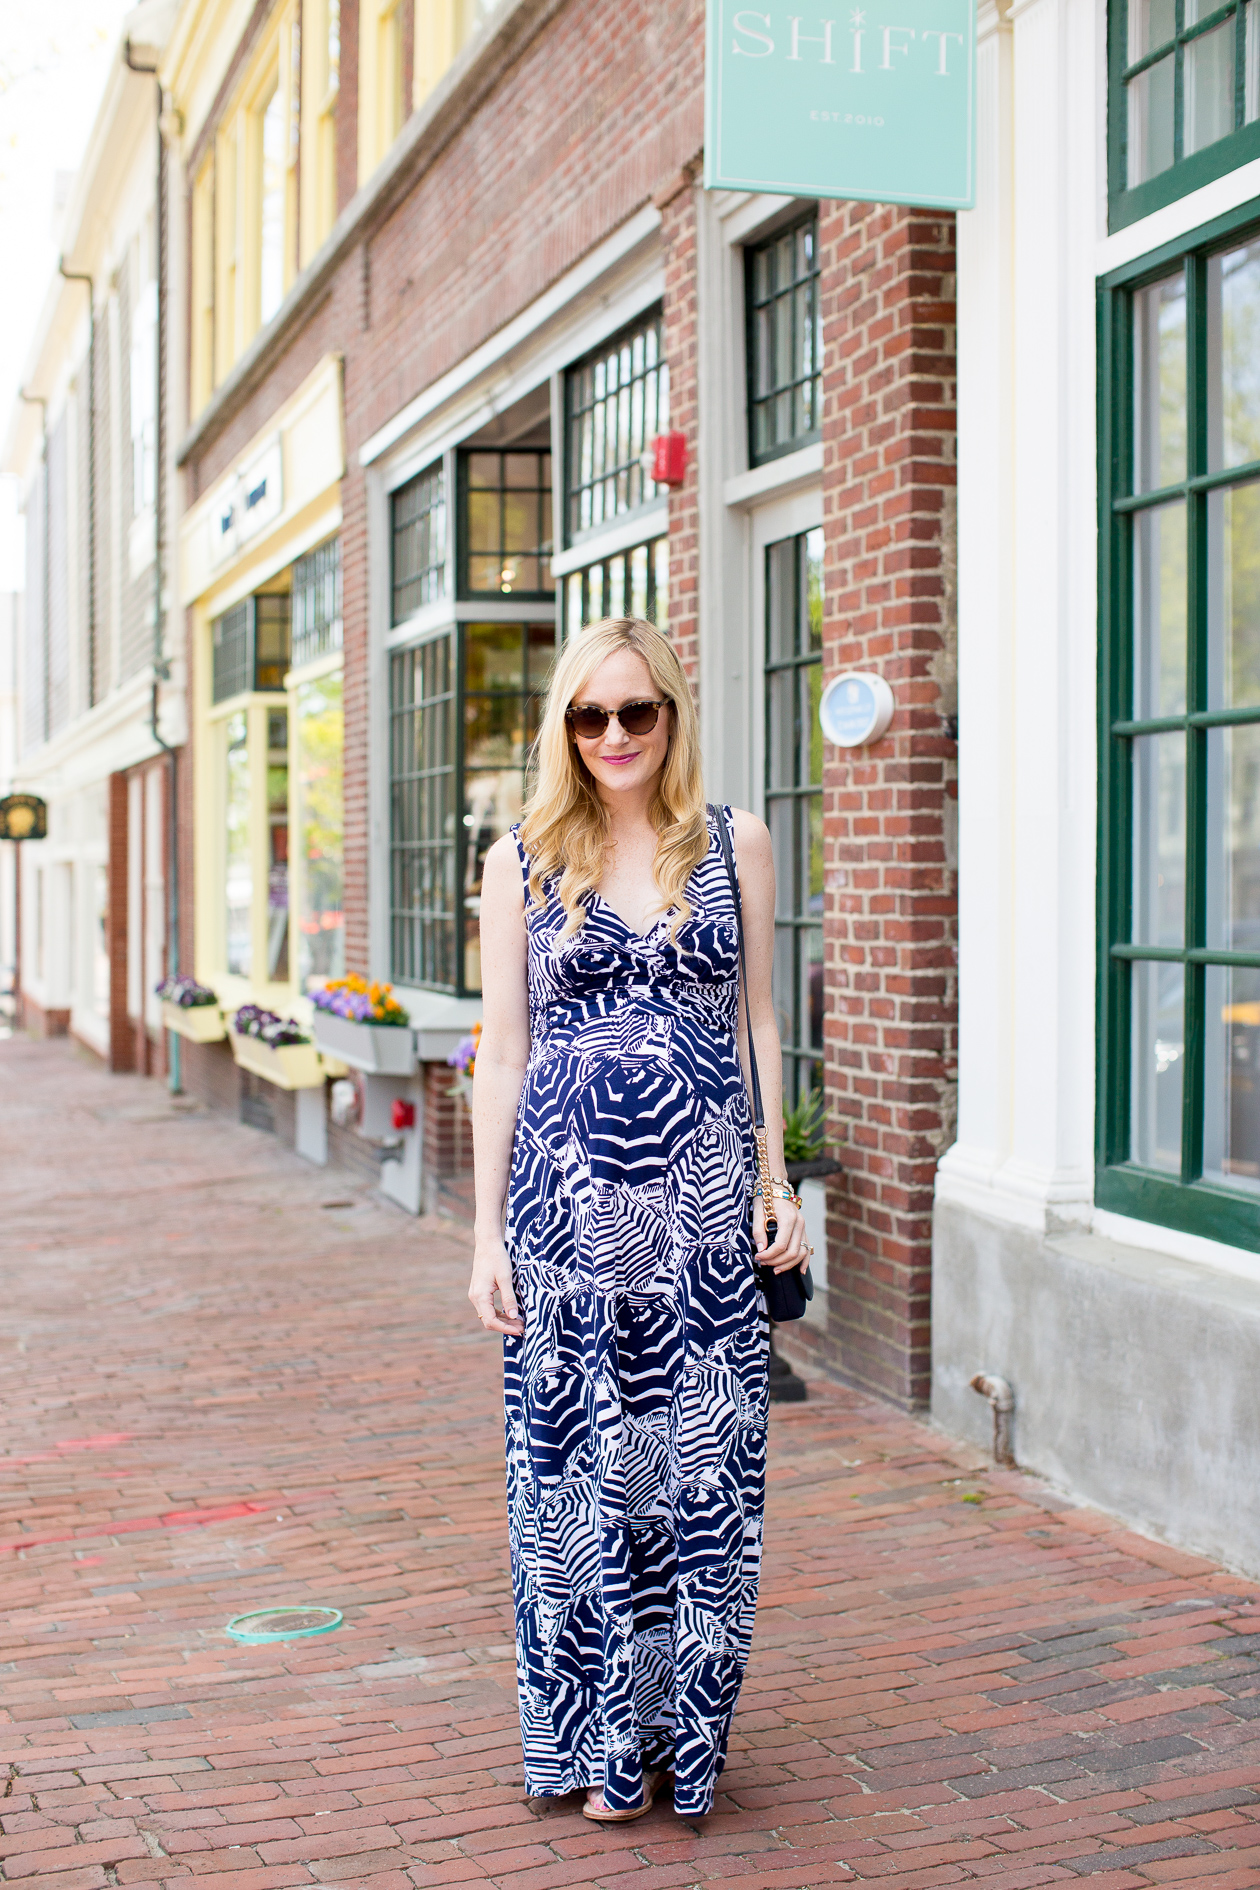 Lilly Pulitzer Sloane Maxi Dress Maternity Pregnancy-5